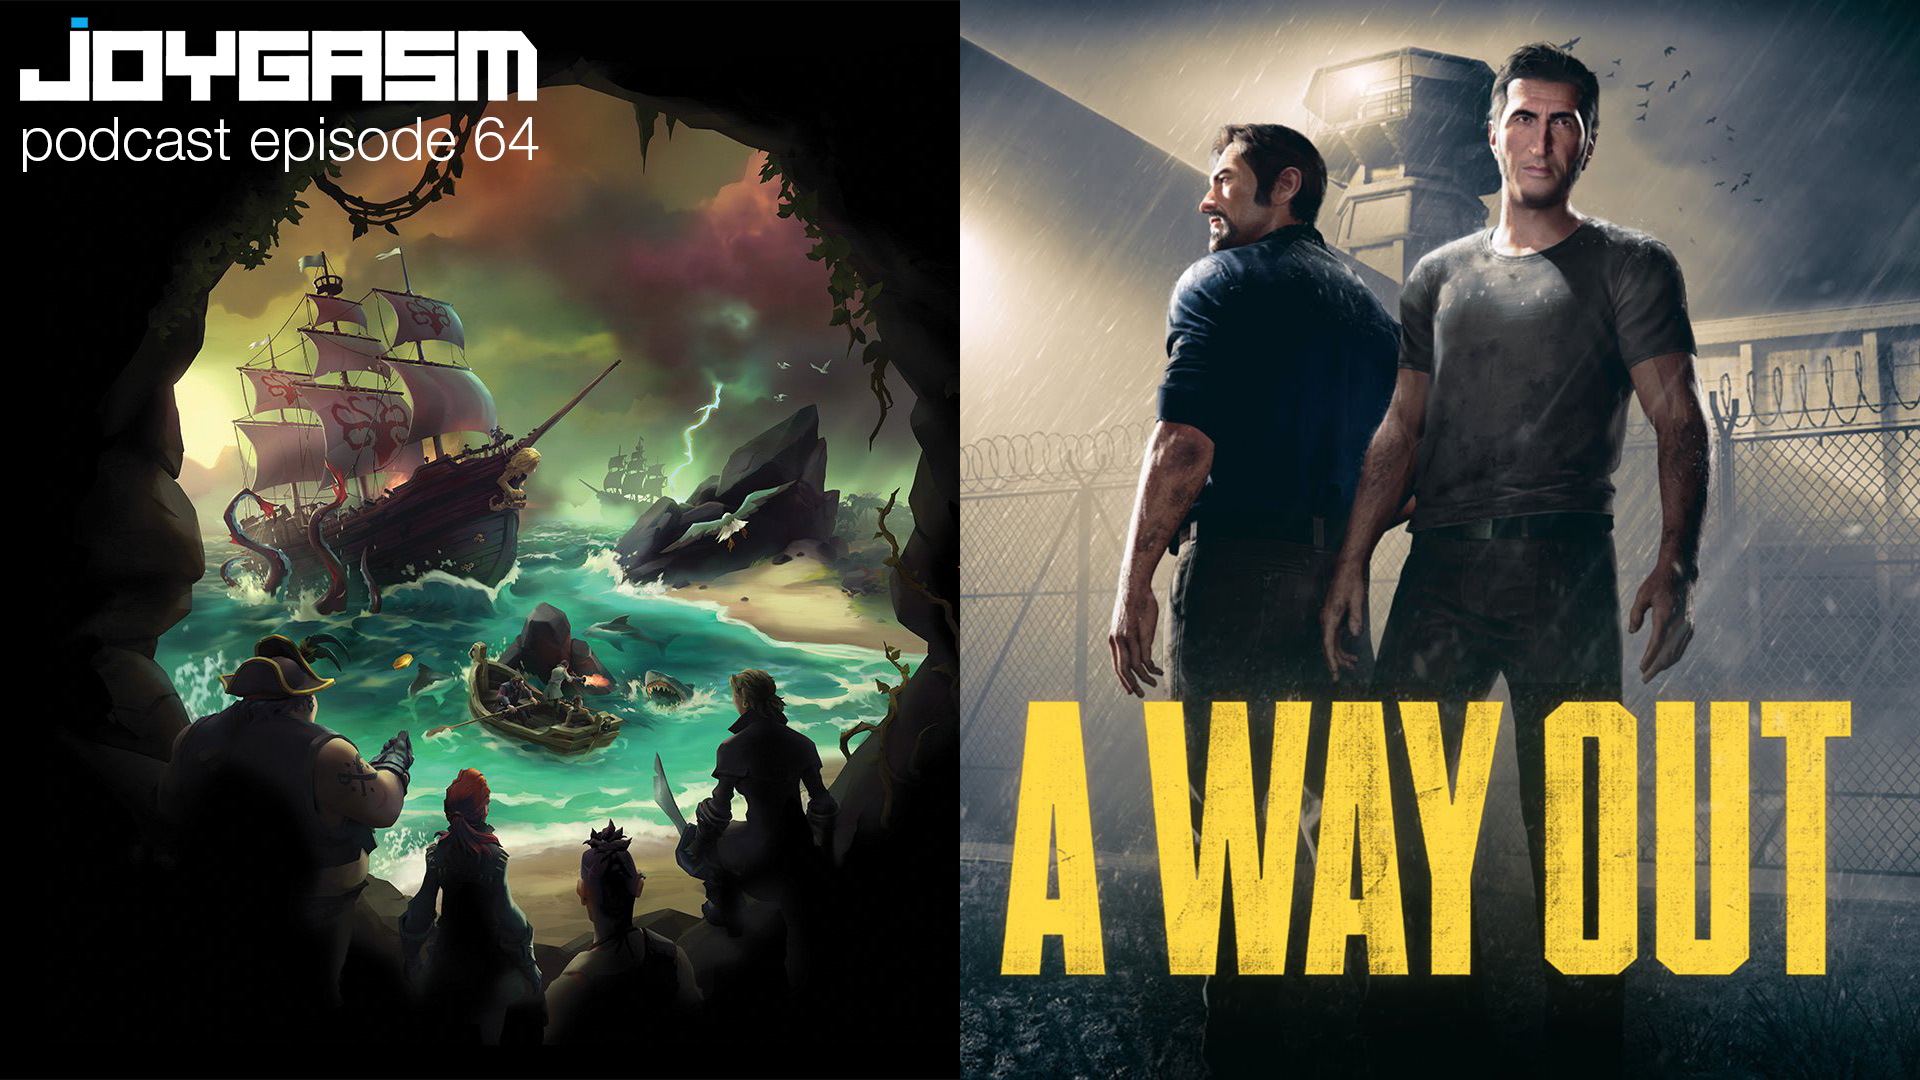 Joygasm Podcast Ep. 64: Sea Of Thieves, A Way Out, Indiana Jones 5, Deadpool 2, & More